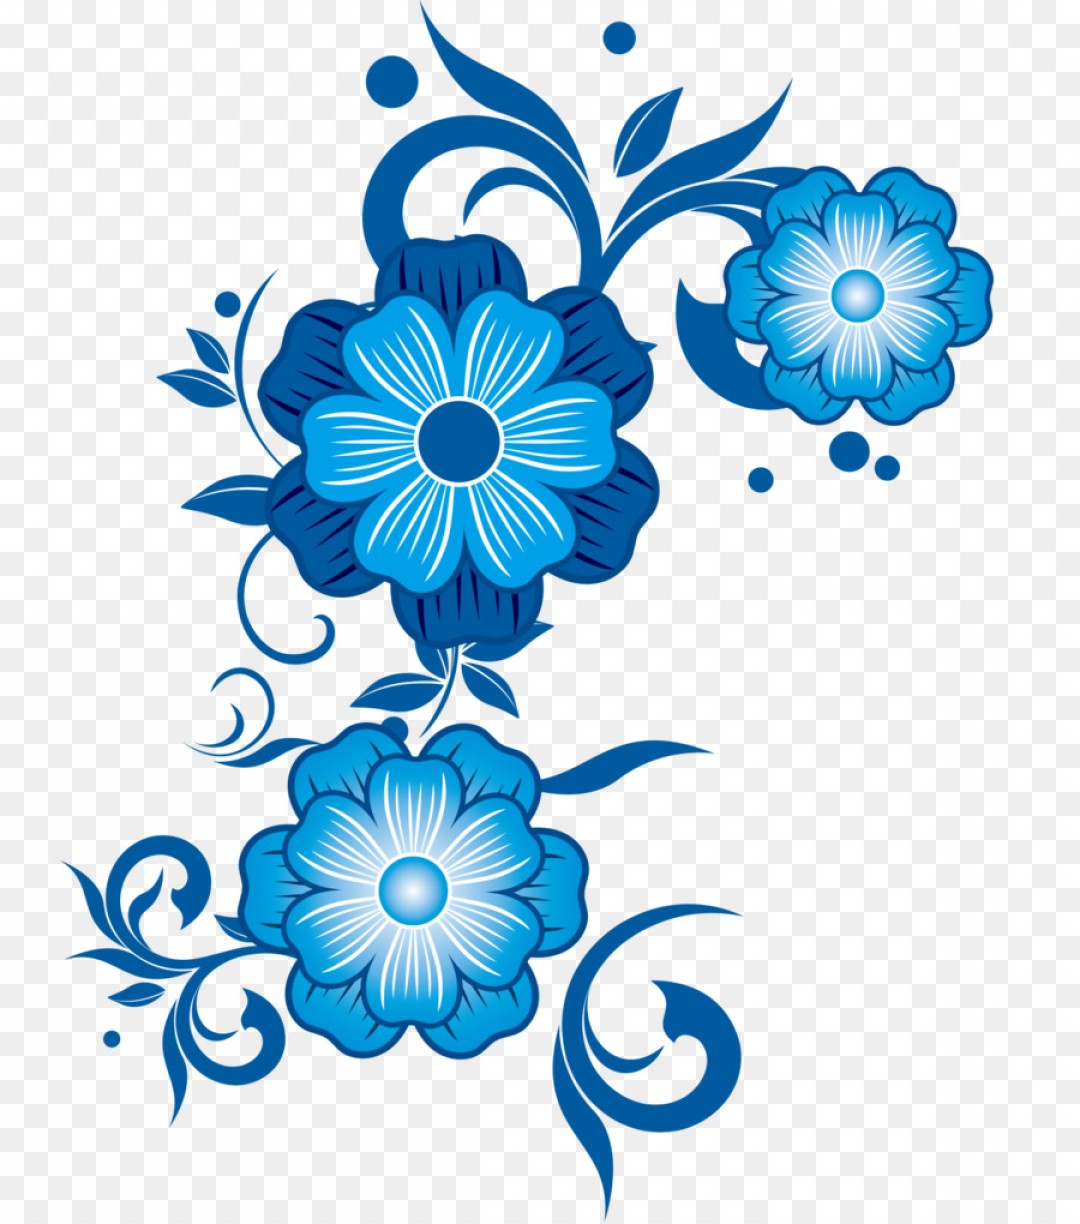 Png Flower Blue Pattern Blue Flower Vector.